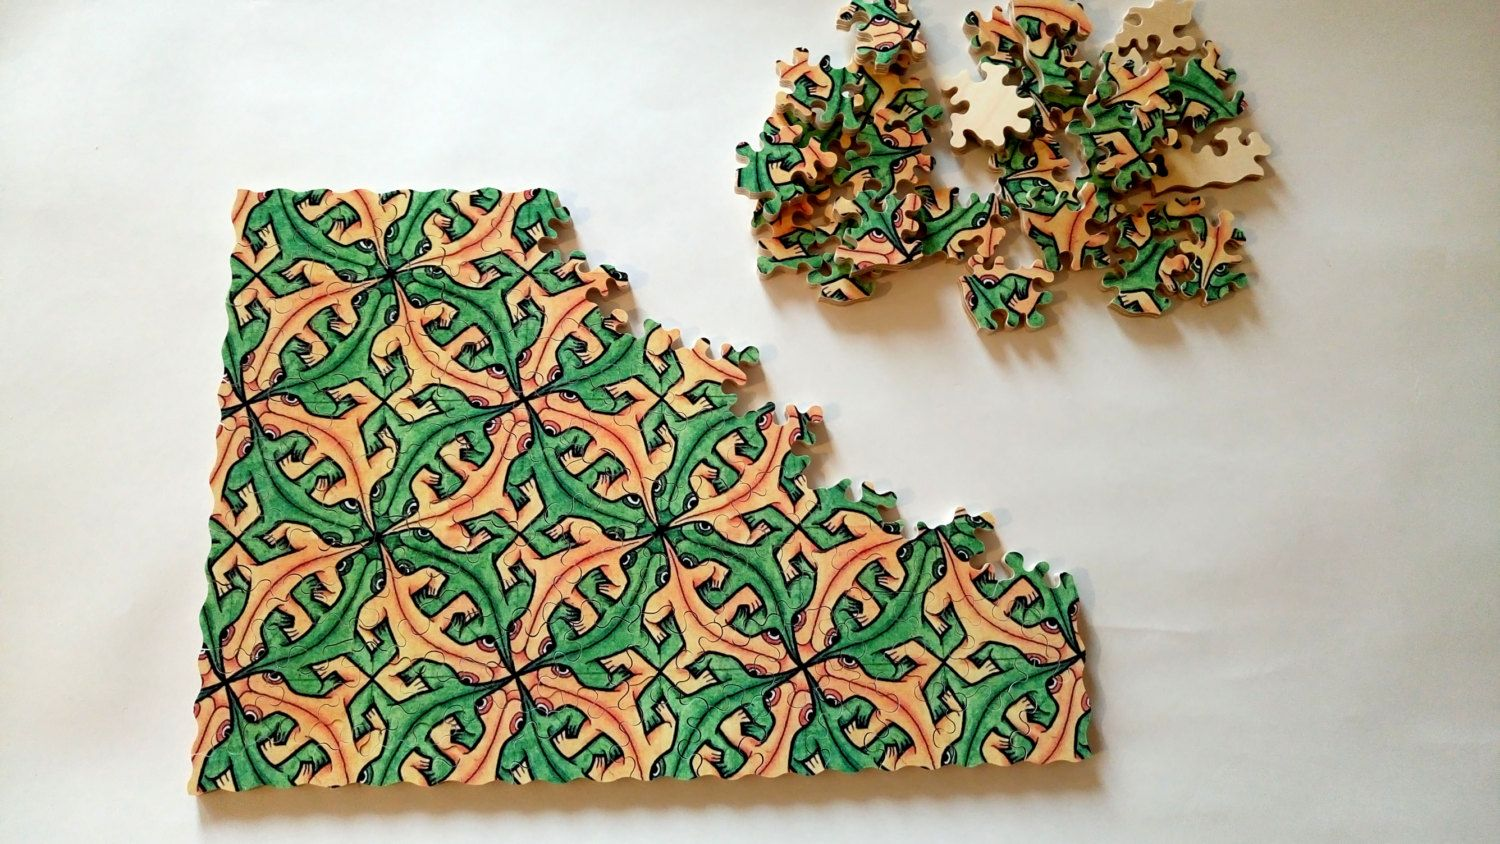 Wooden jigsaw puzzle lizards hand cut wood handcrafted custom wooden jigsaw puzzle lizards hand cut wood handcrafted custom jigsaw puzzle by mrgogoworkshop on greentooth Choice Image